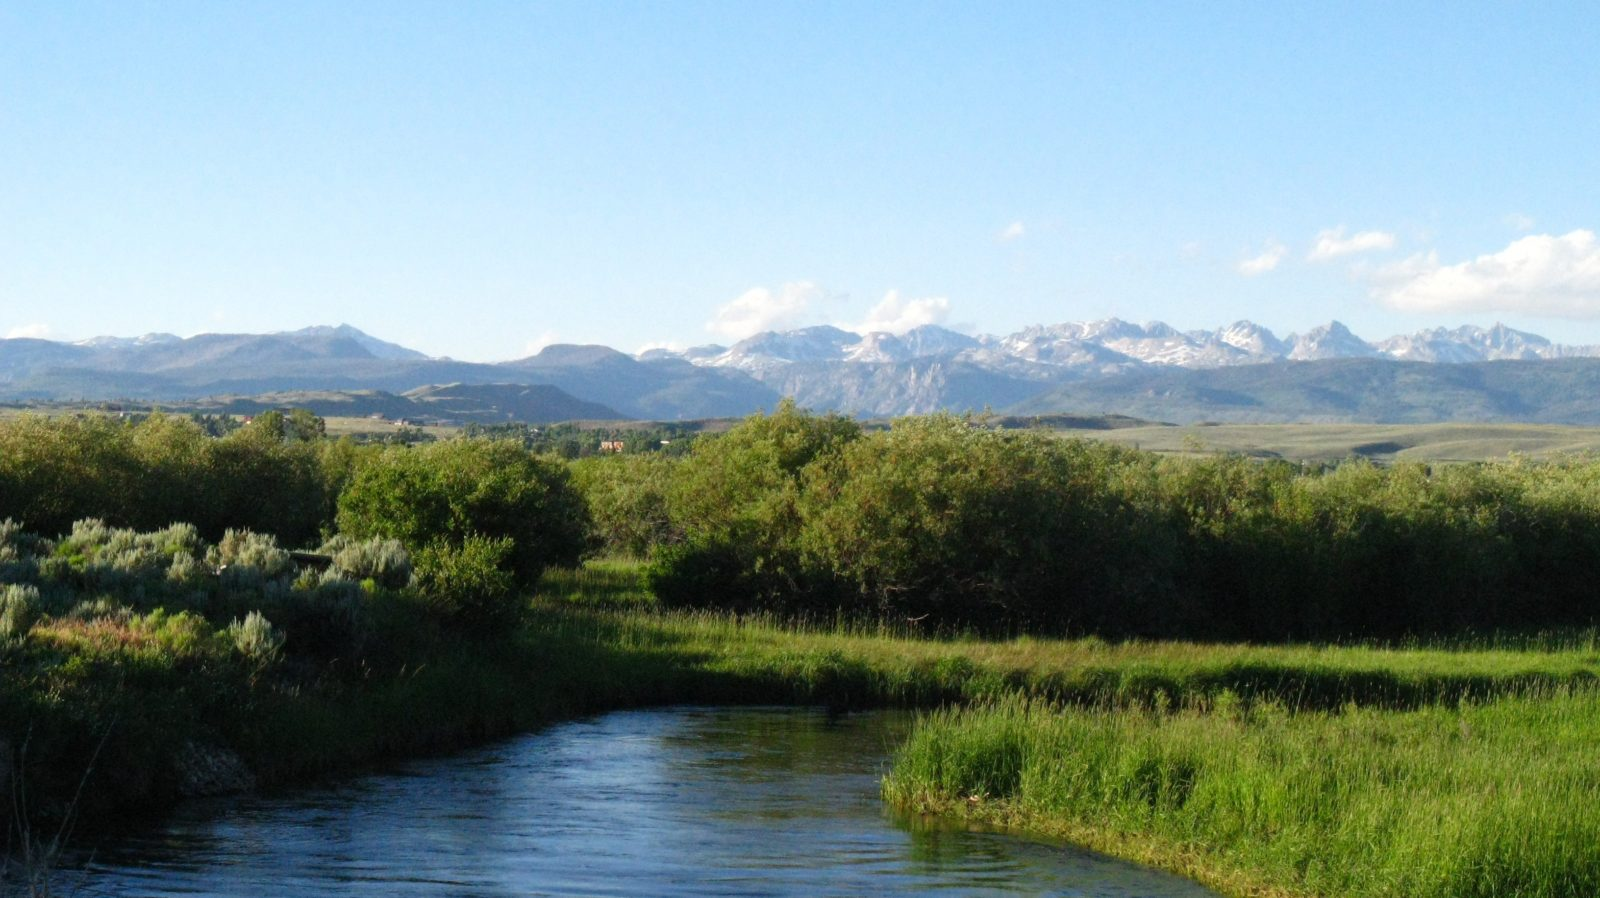 Pine Creek flows through Pinedale